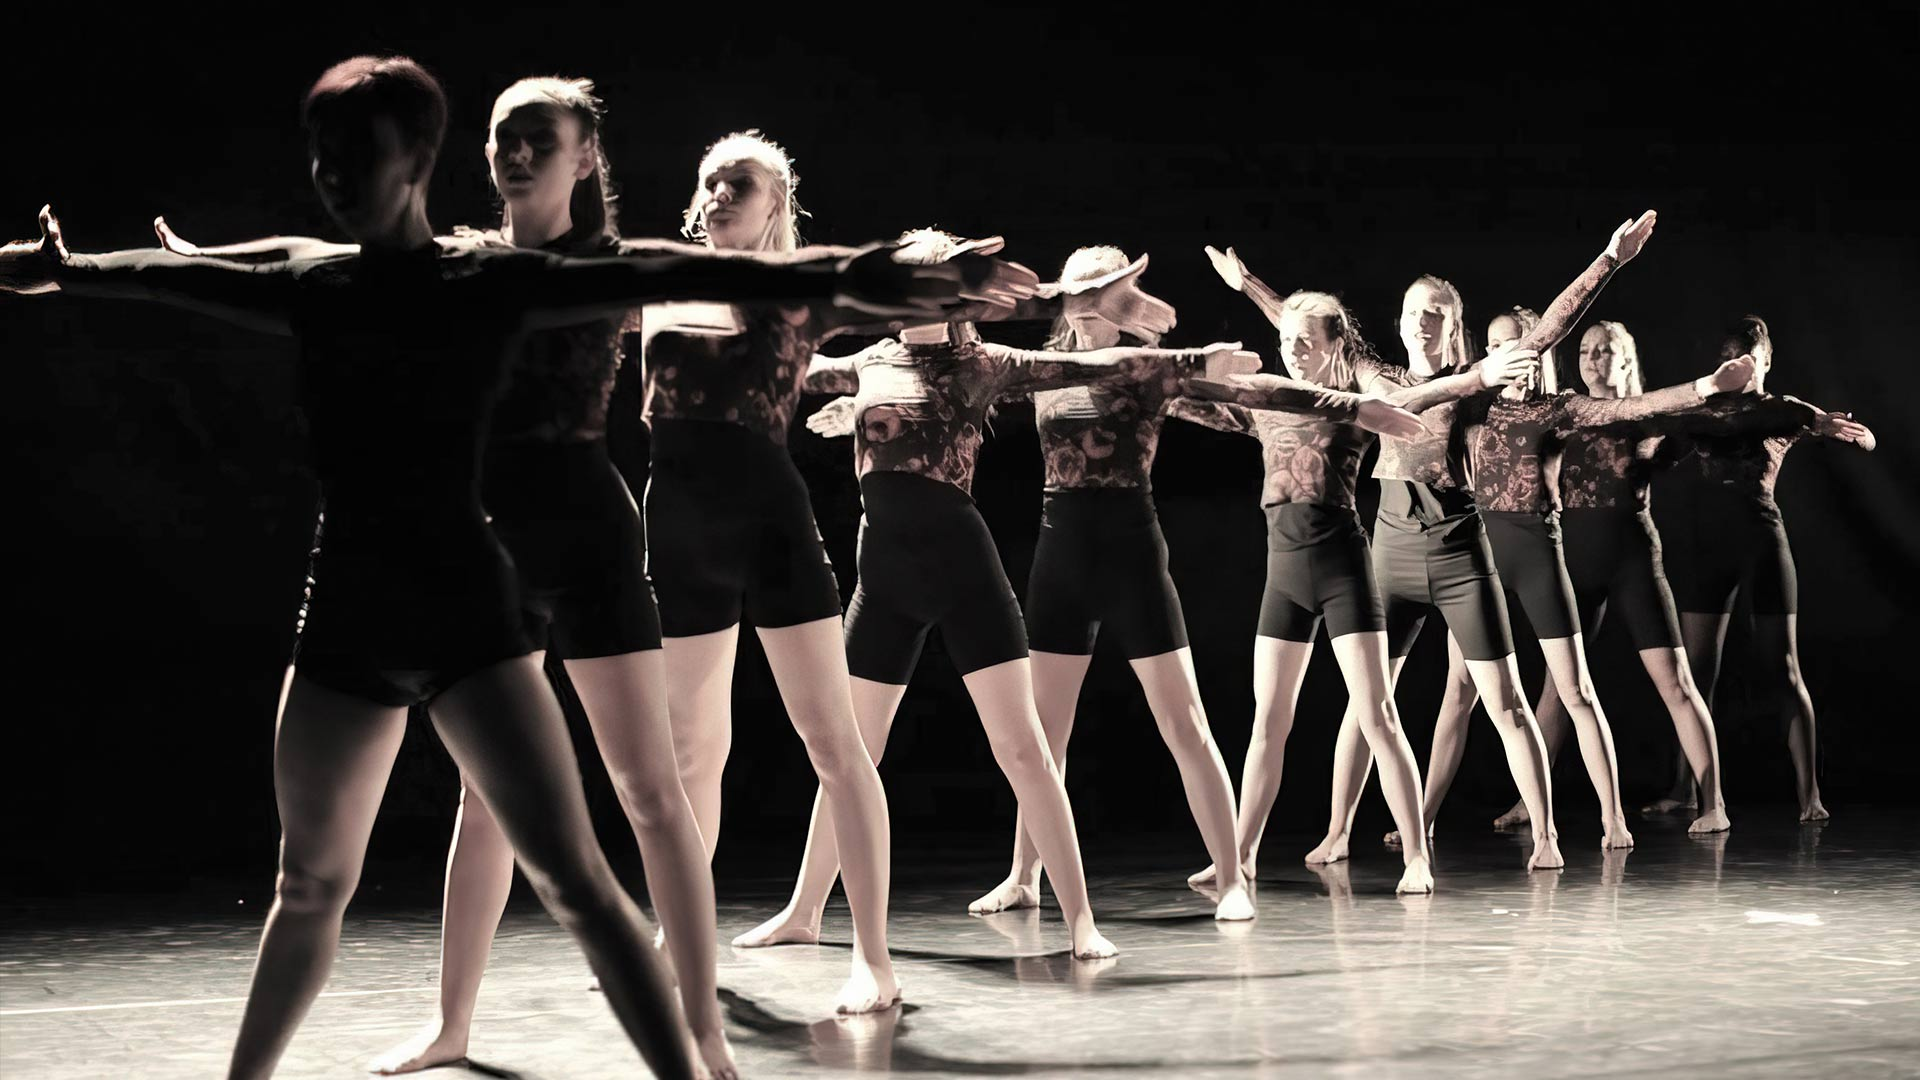 Youth dance training based in Stourbridge and Halesowen - we help dancers to explore their own creative side, and to develop and perfect their performance skills.